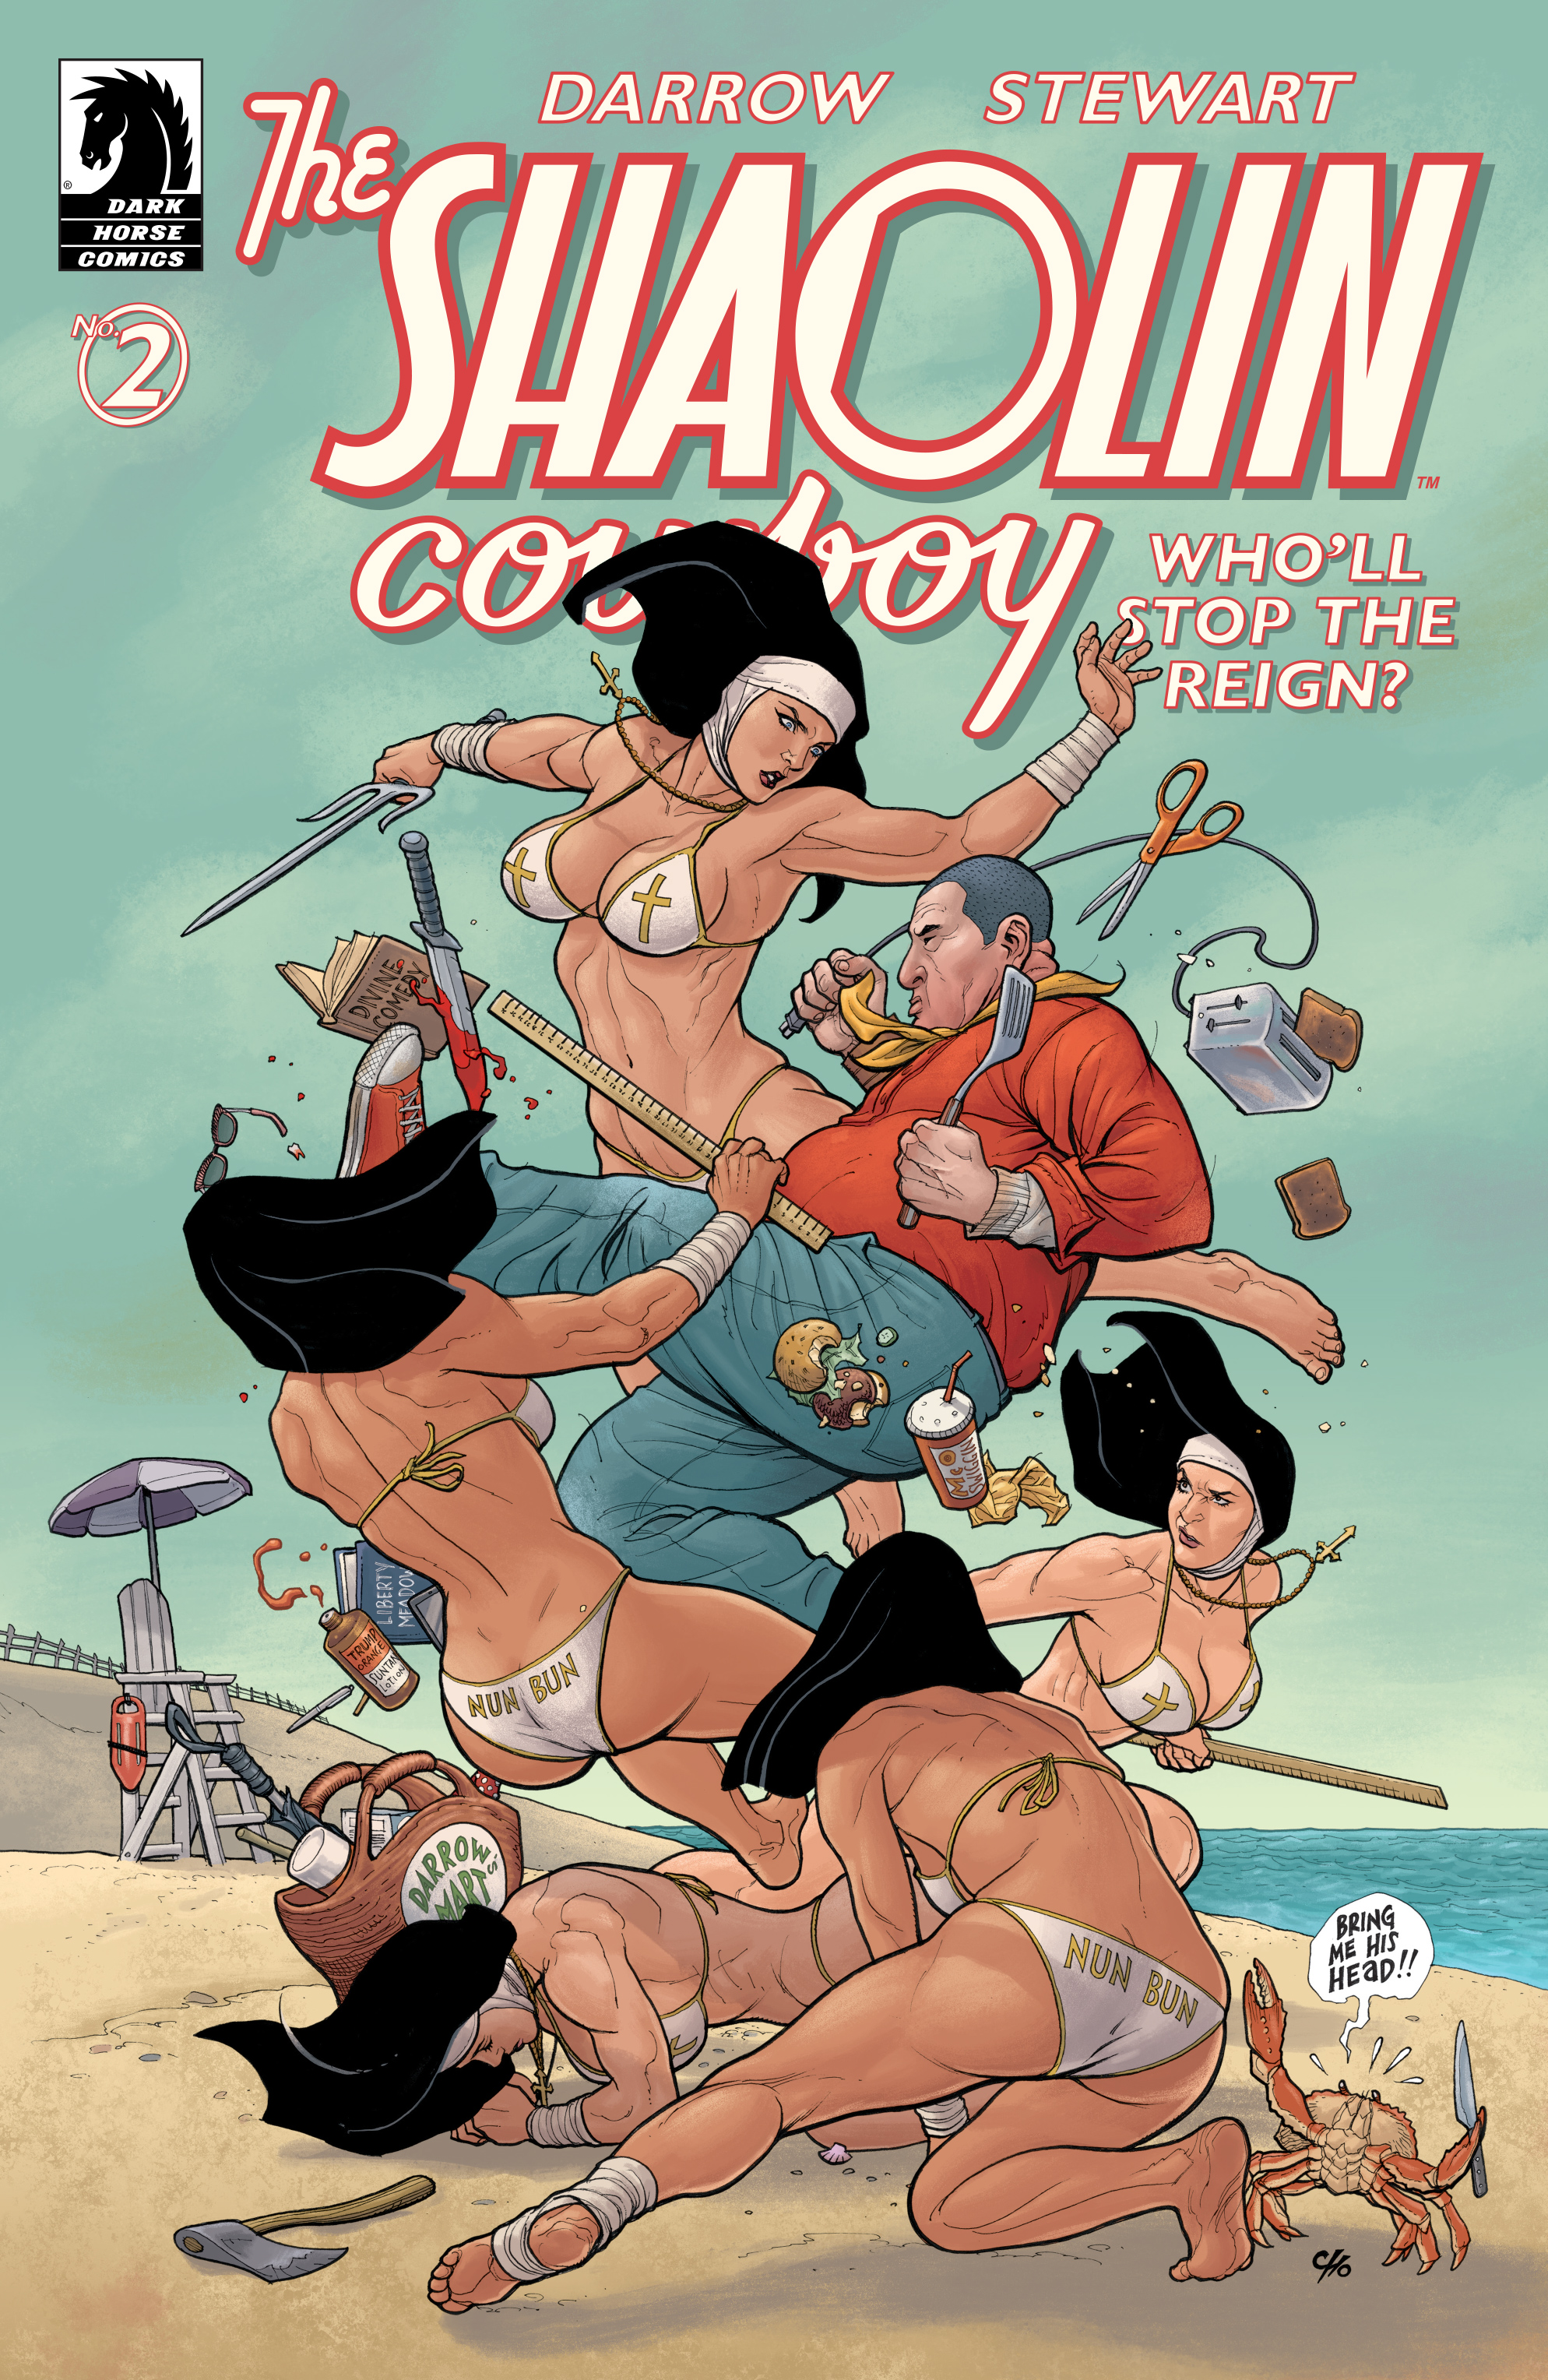 The Shaolin Cowboy: Wholl Stop the Reign? 2 Page 2